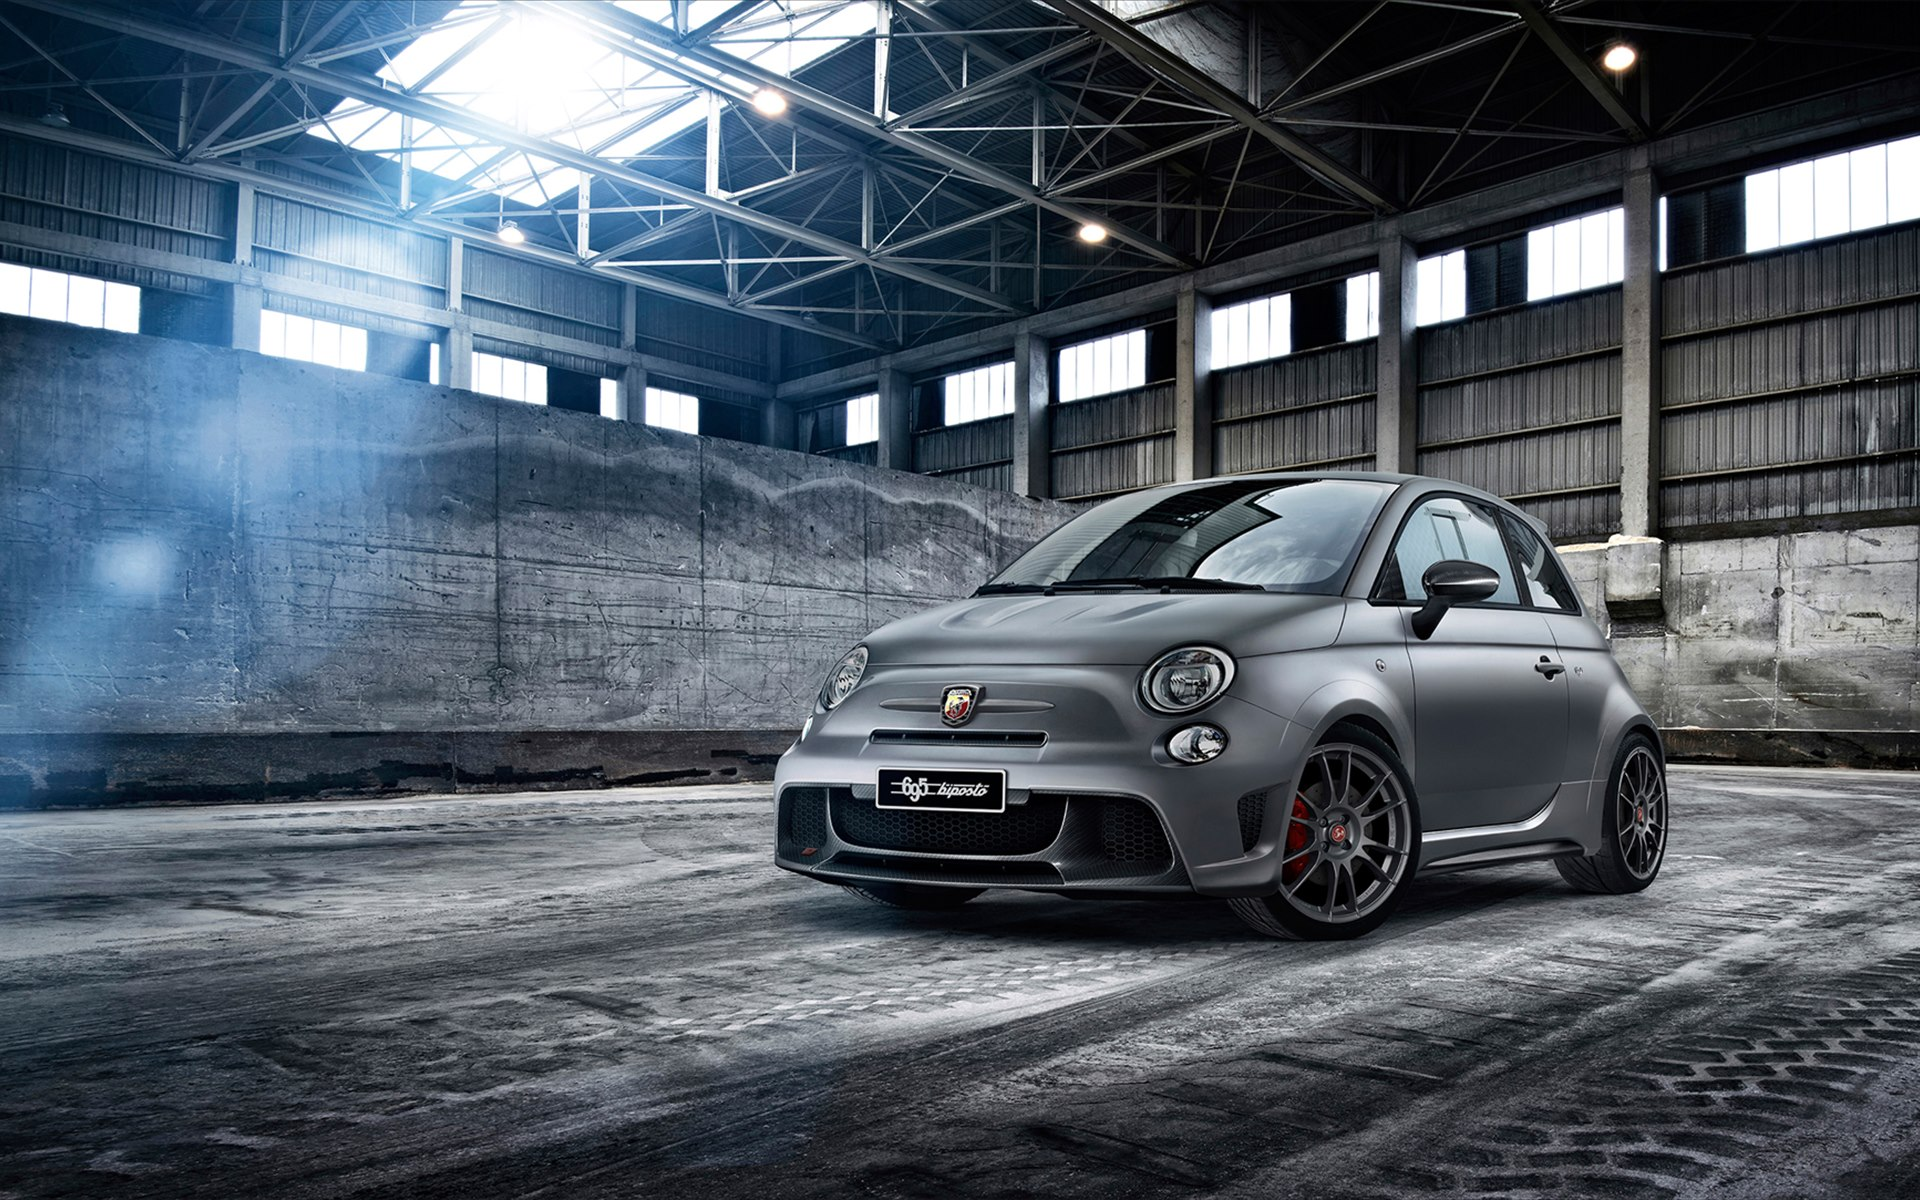 2014 fiat abarth 695 biposto wallpaper hd car wallpapers. Black Bedroom Furniture Sets. Home Design Ideas